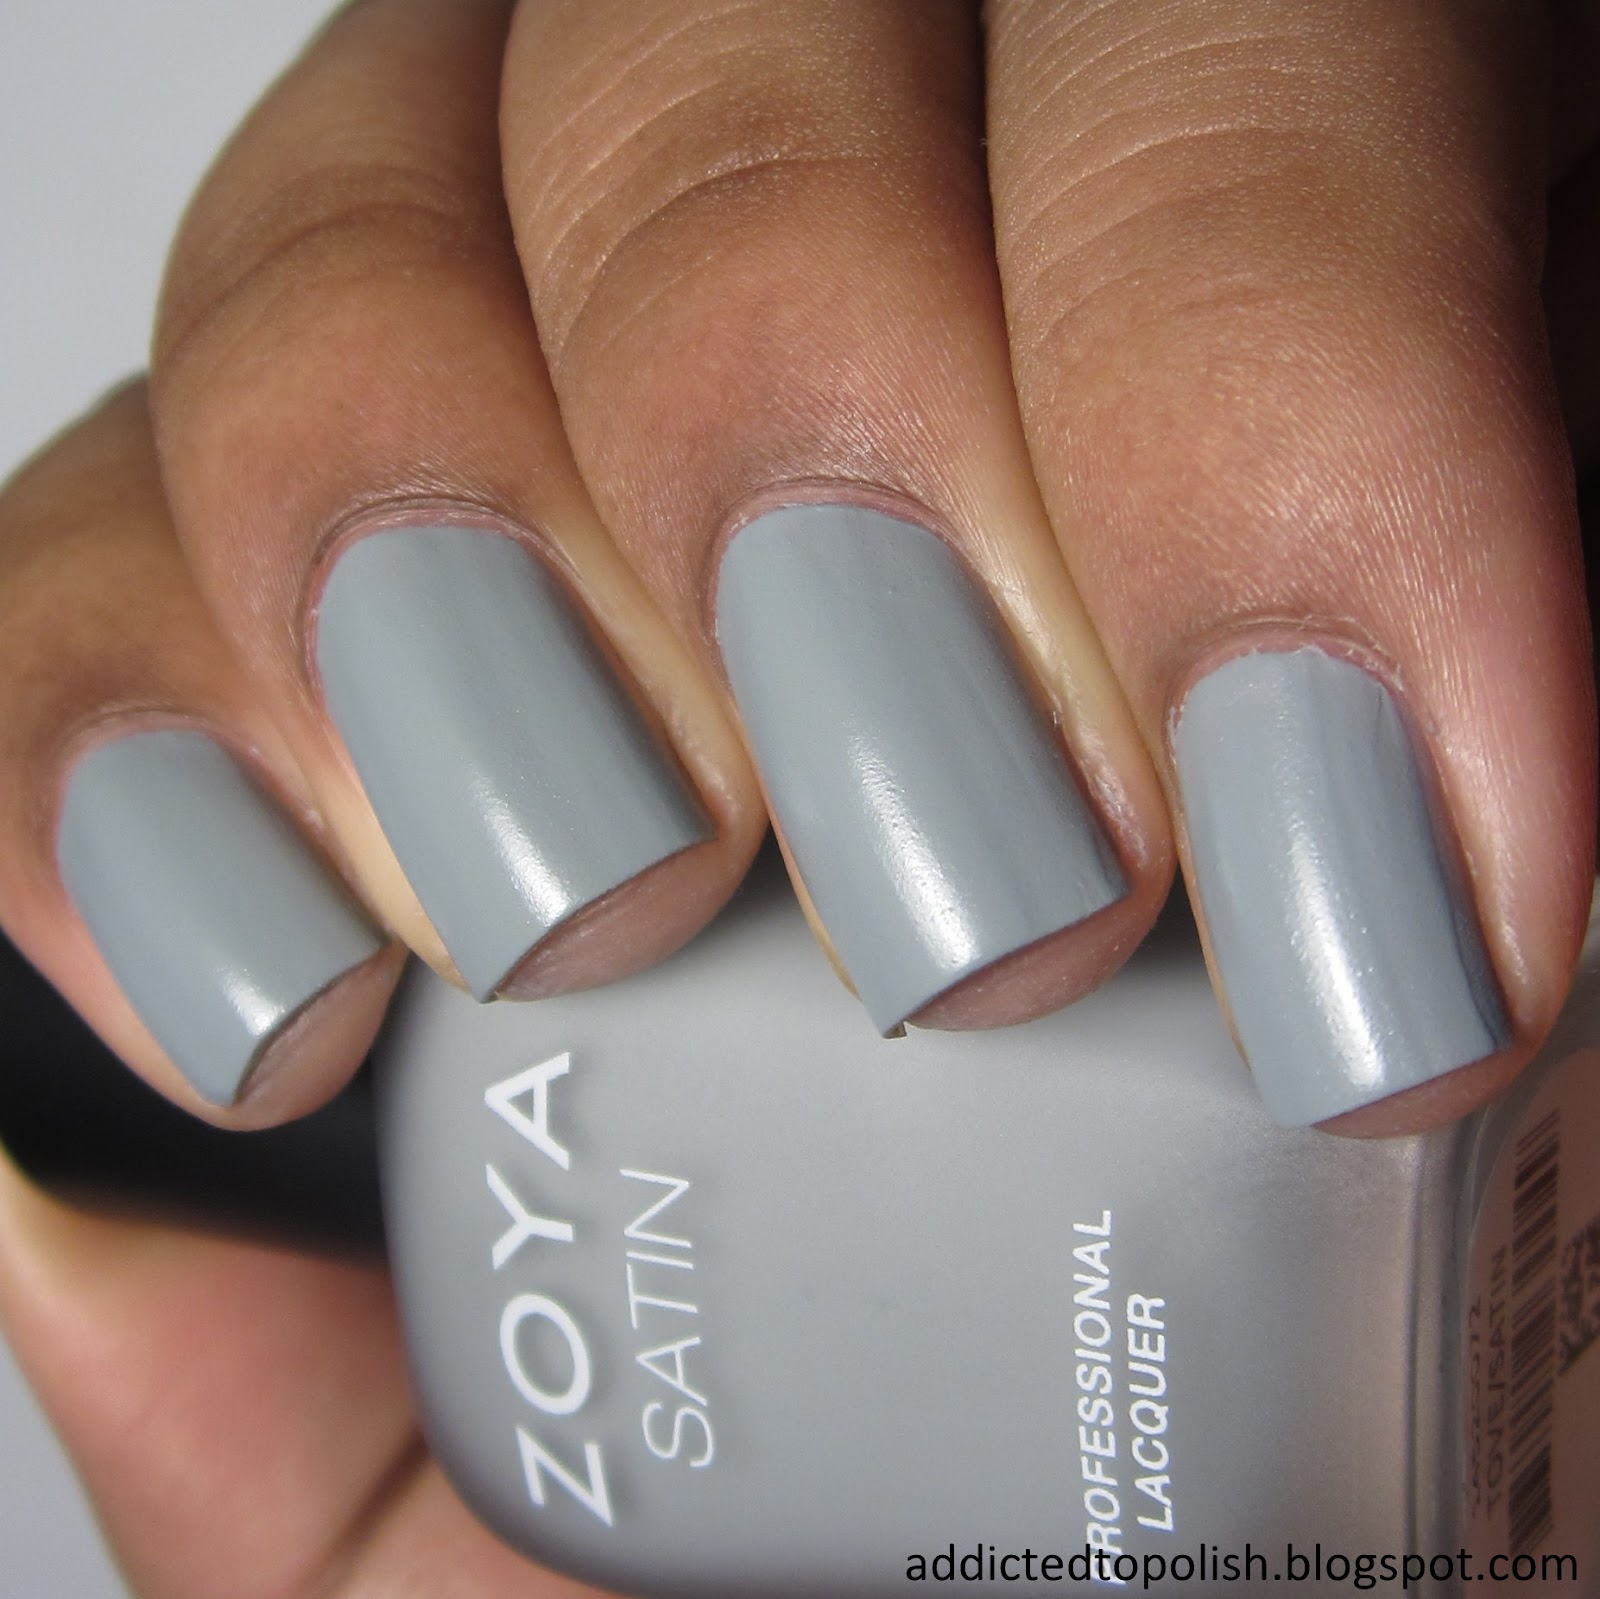 Addicted to Polish Zoya Tove Swatches